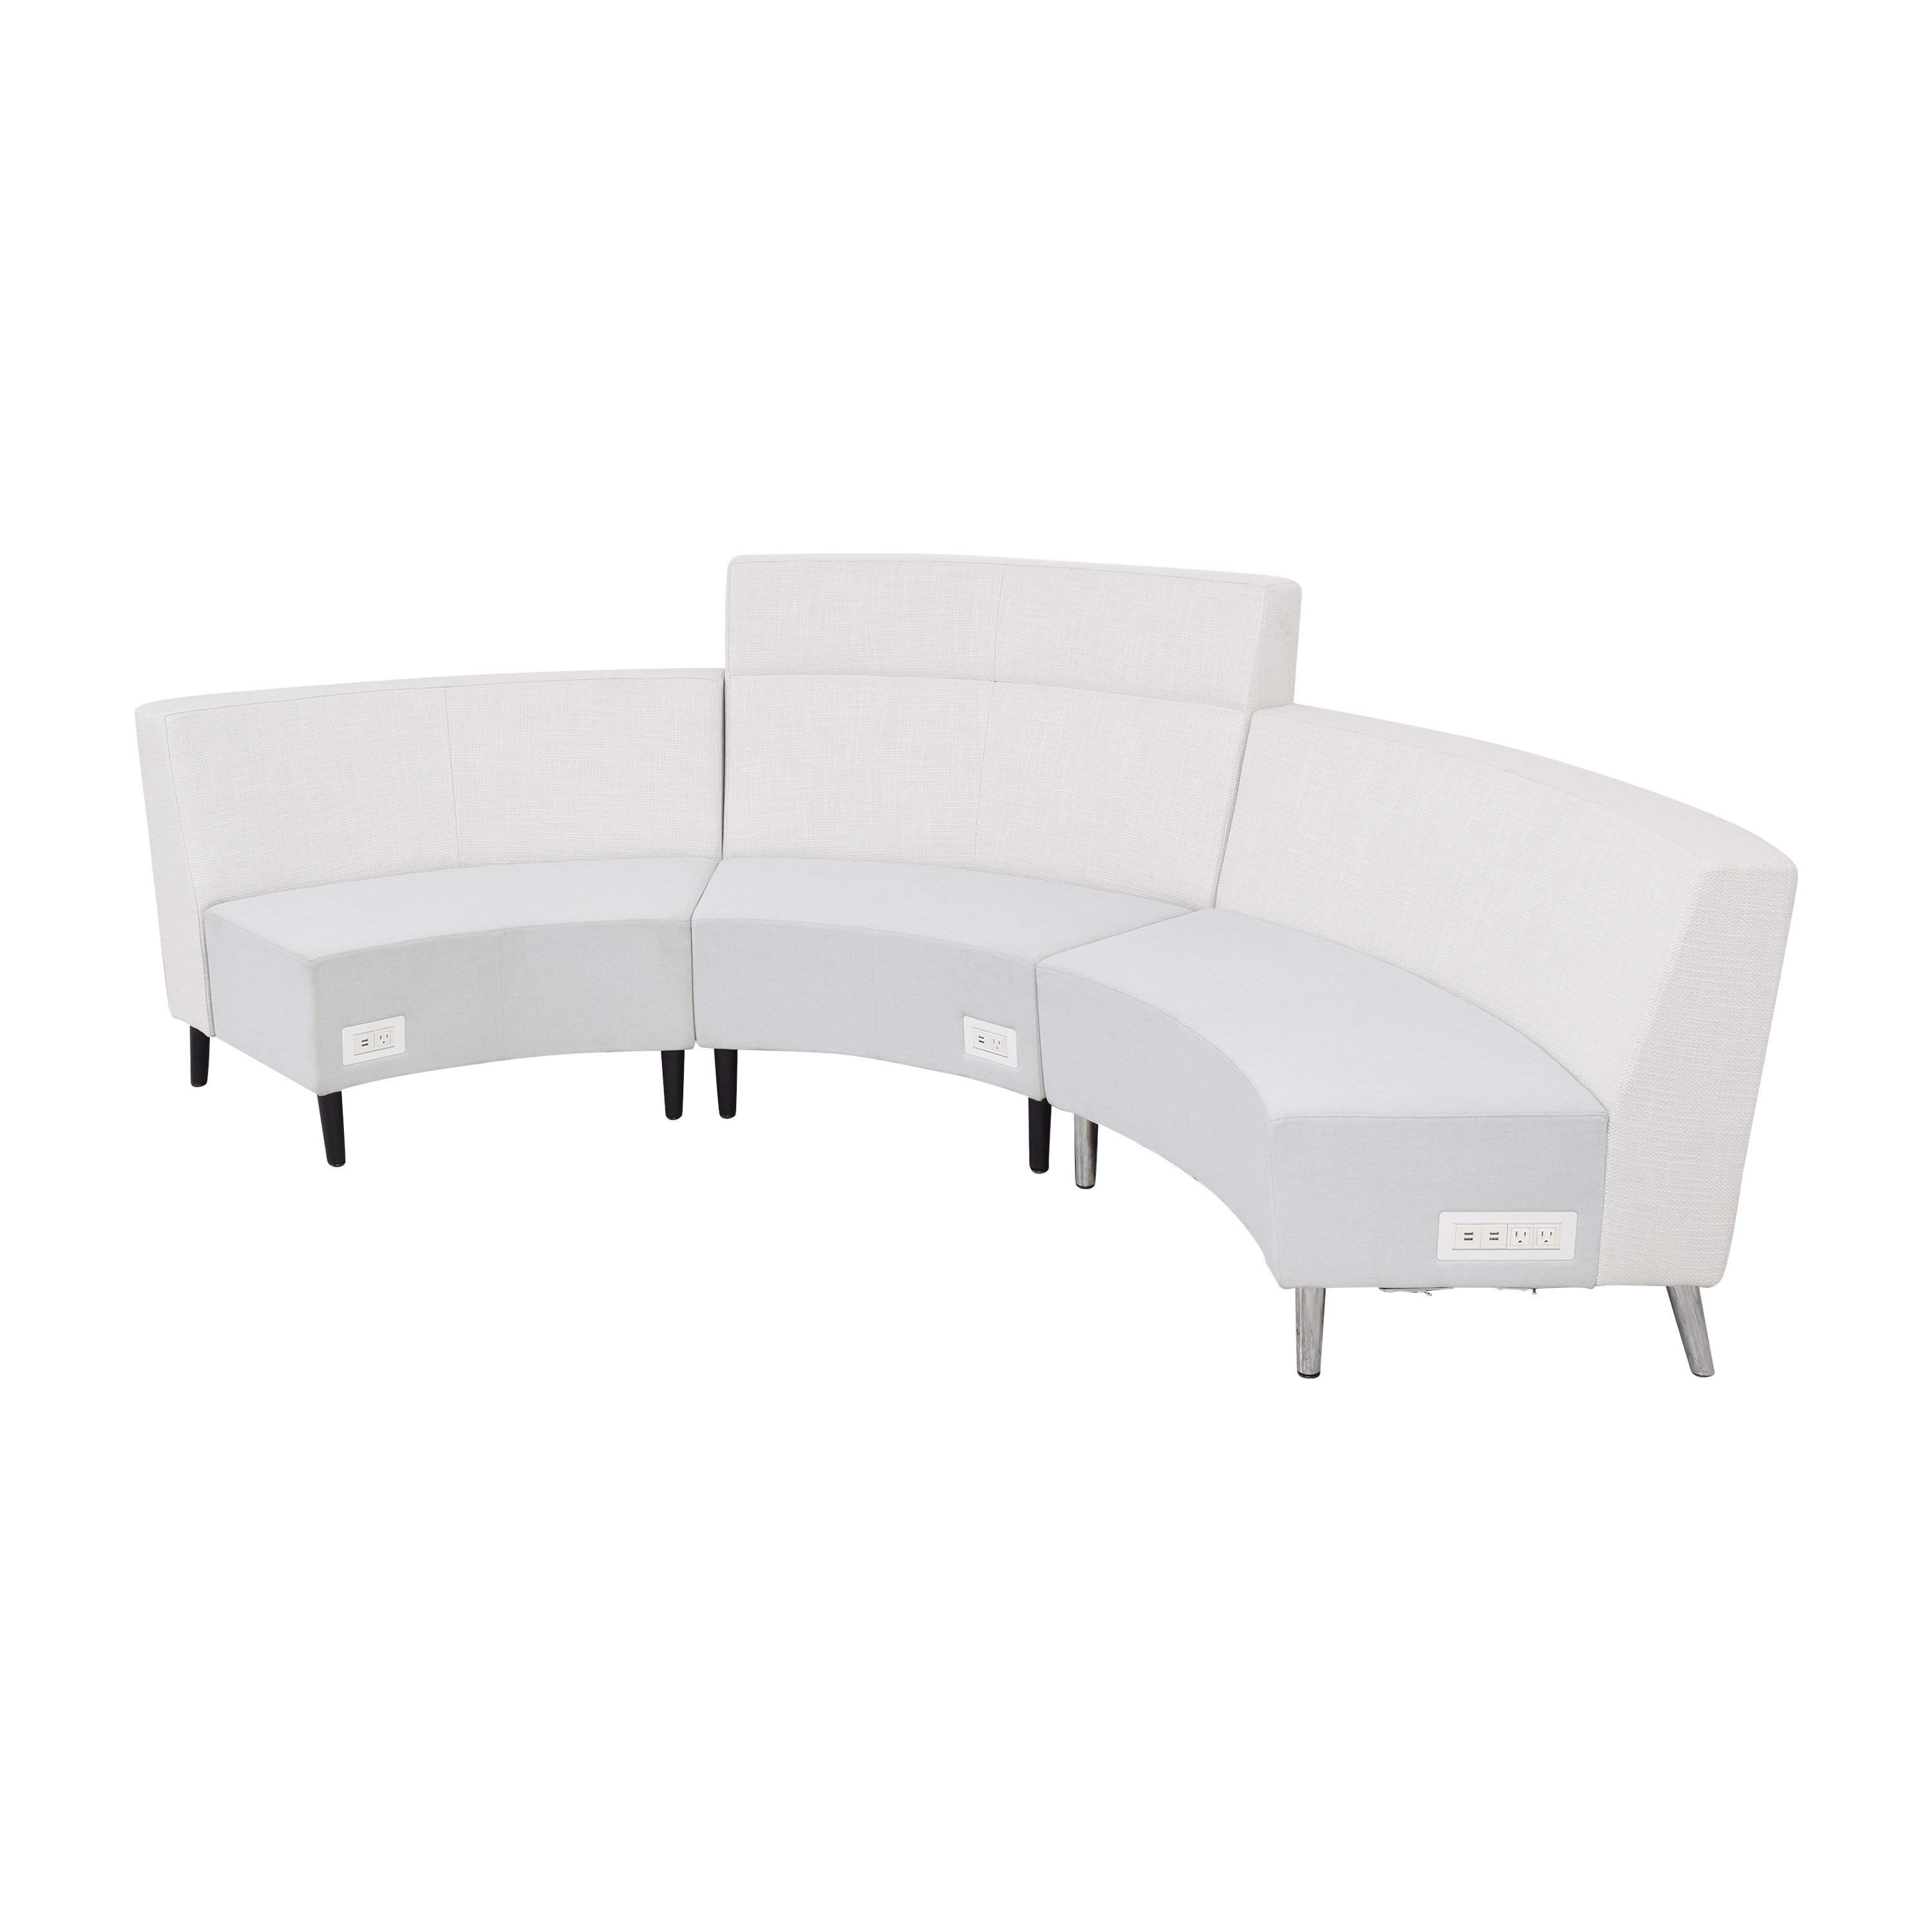 Global Furniture Group Global Furniture Group River Sectional Sofa with Coffee Table Section dimensions